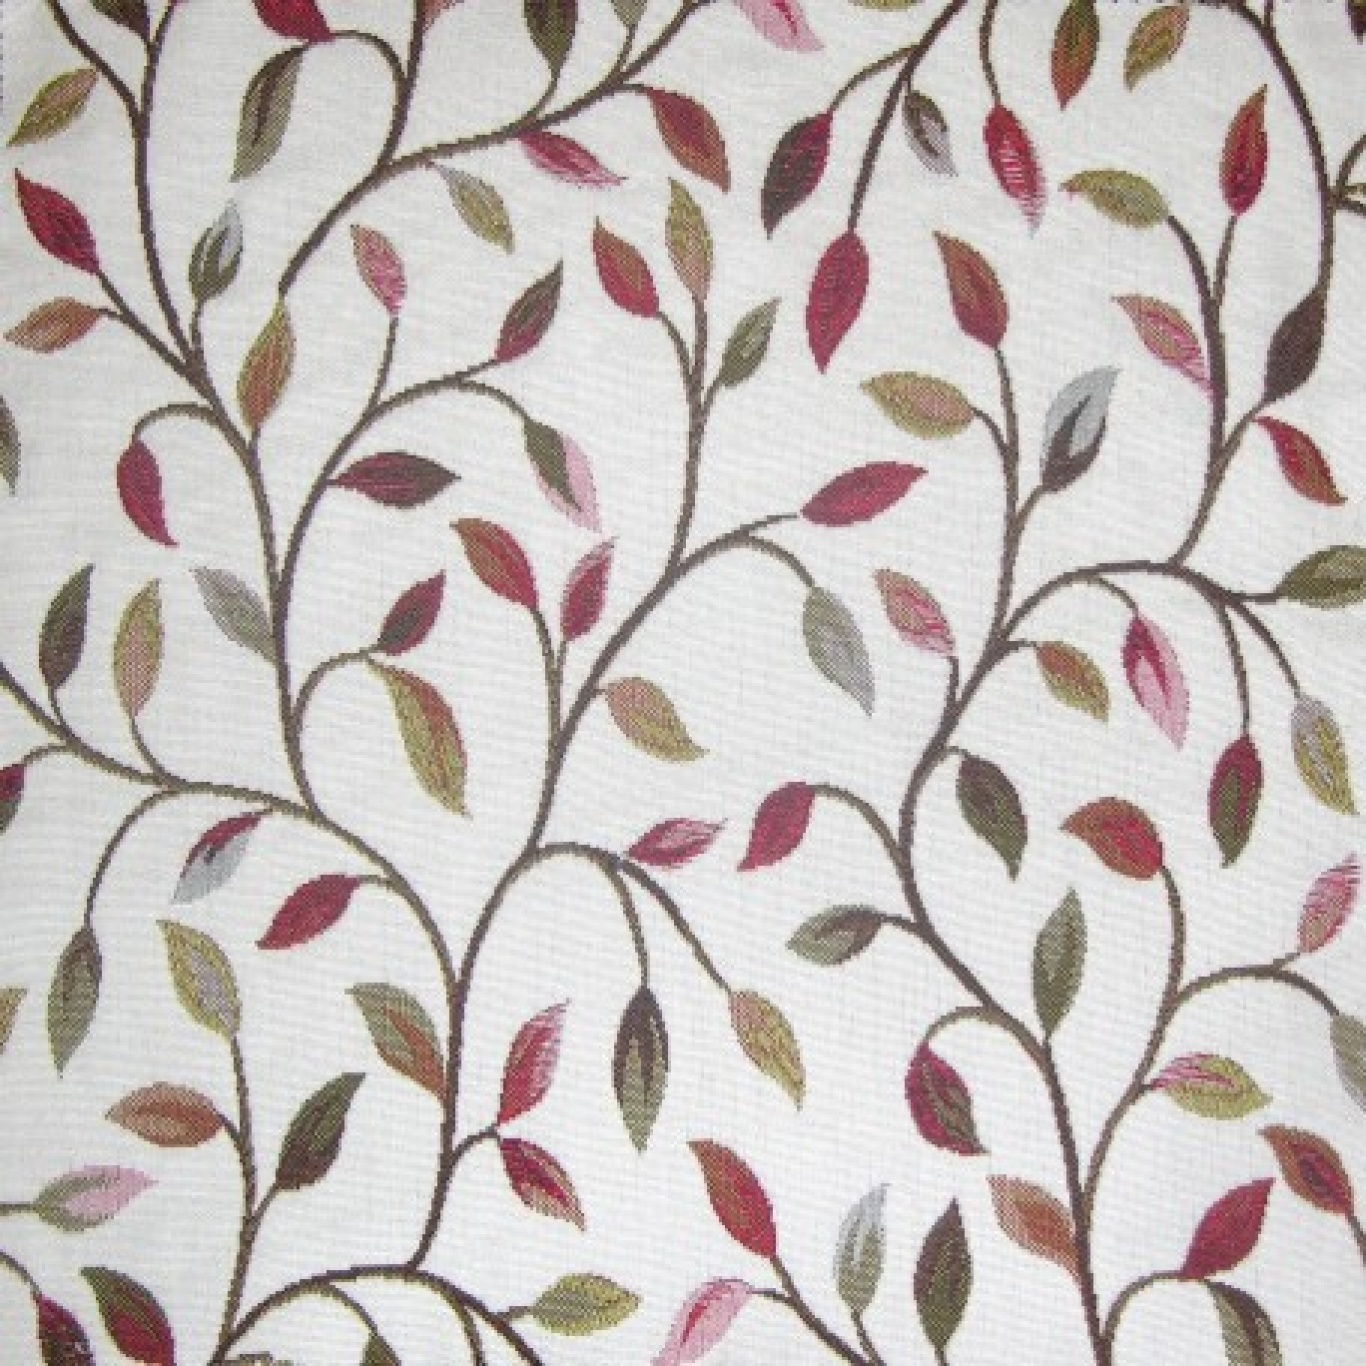 Image of Voyage Cervino Firelight Curtain Fabric 1.8m Remnant